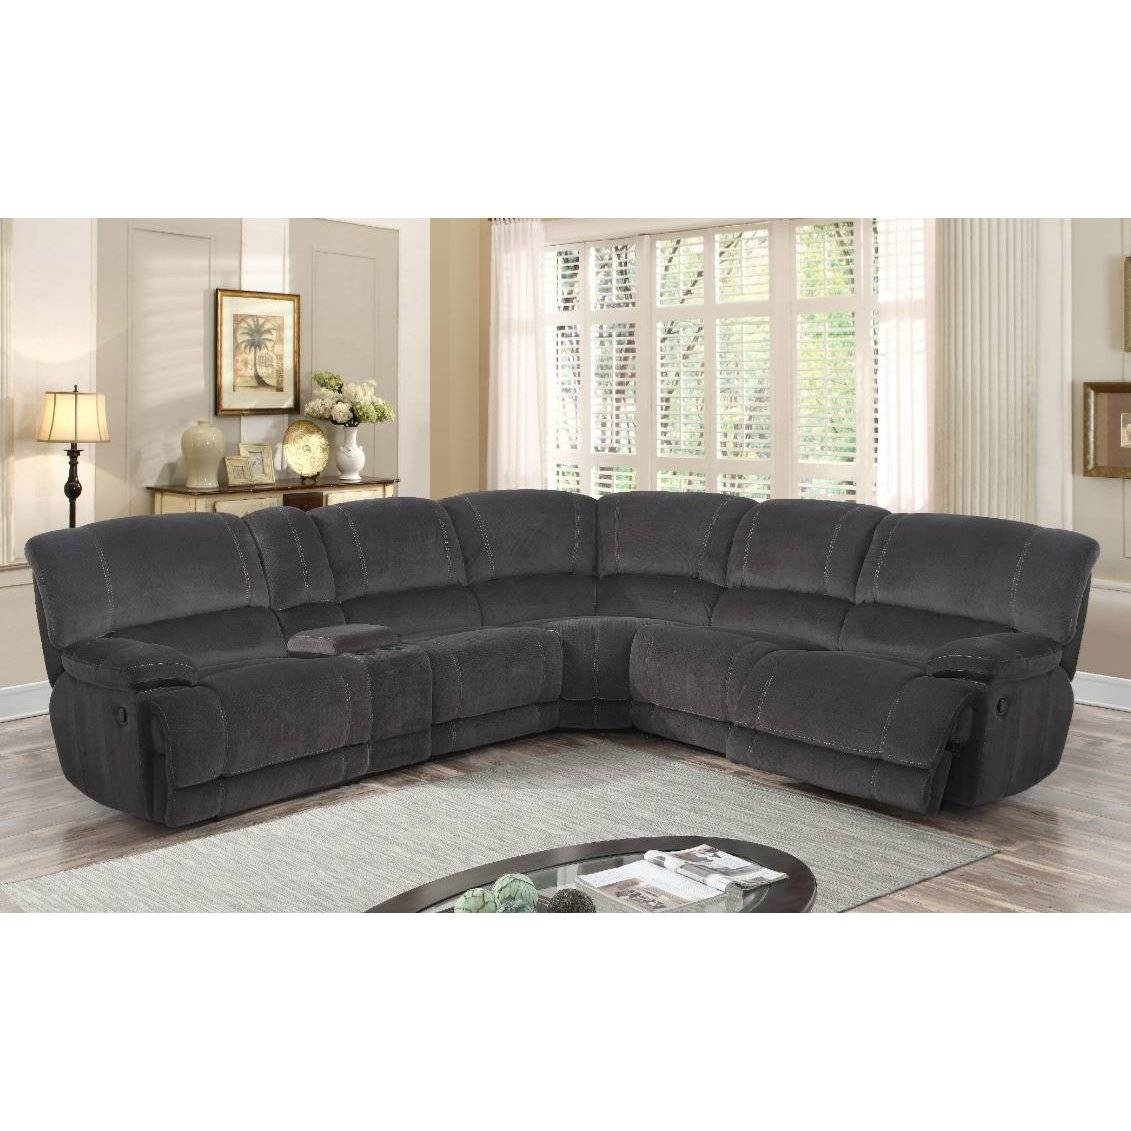 Awesome Most Comfortable Sectional Sofas 52 About Remodel Albany Inside Albany Industries Sectional Sofa (View 15 of 30)